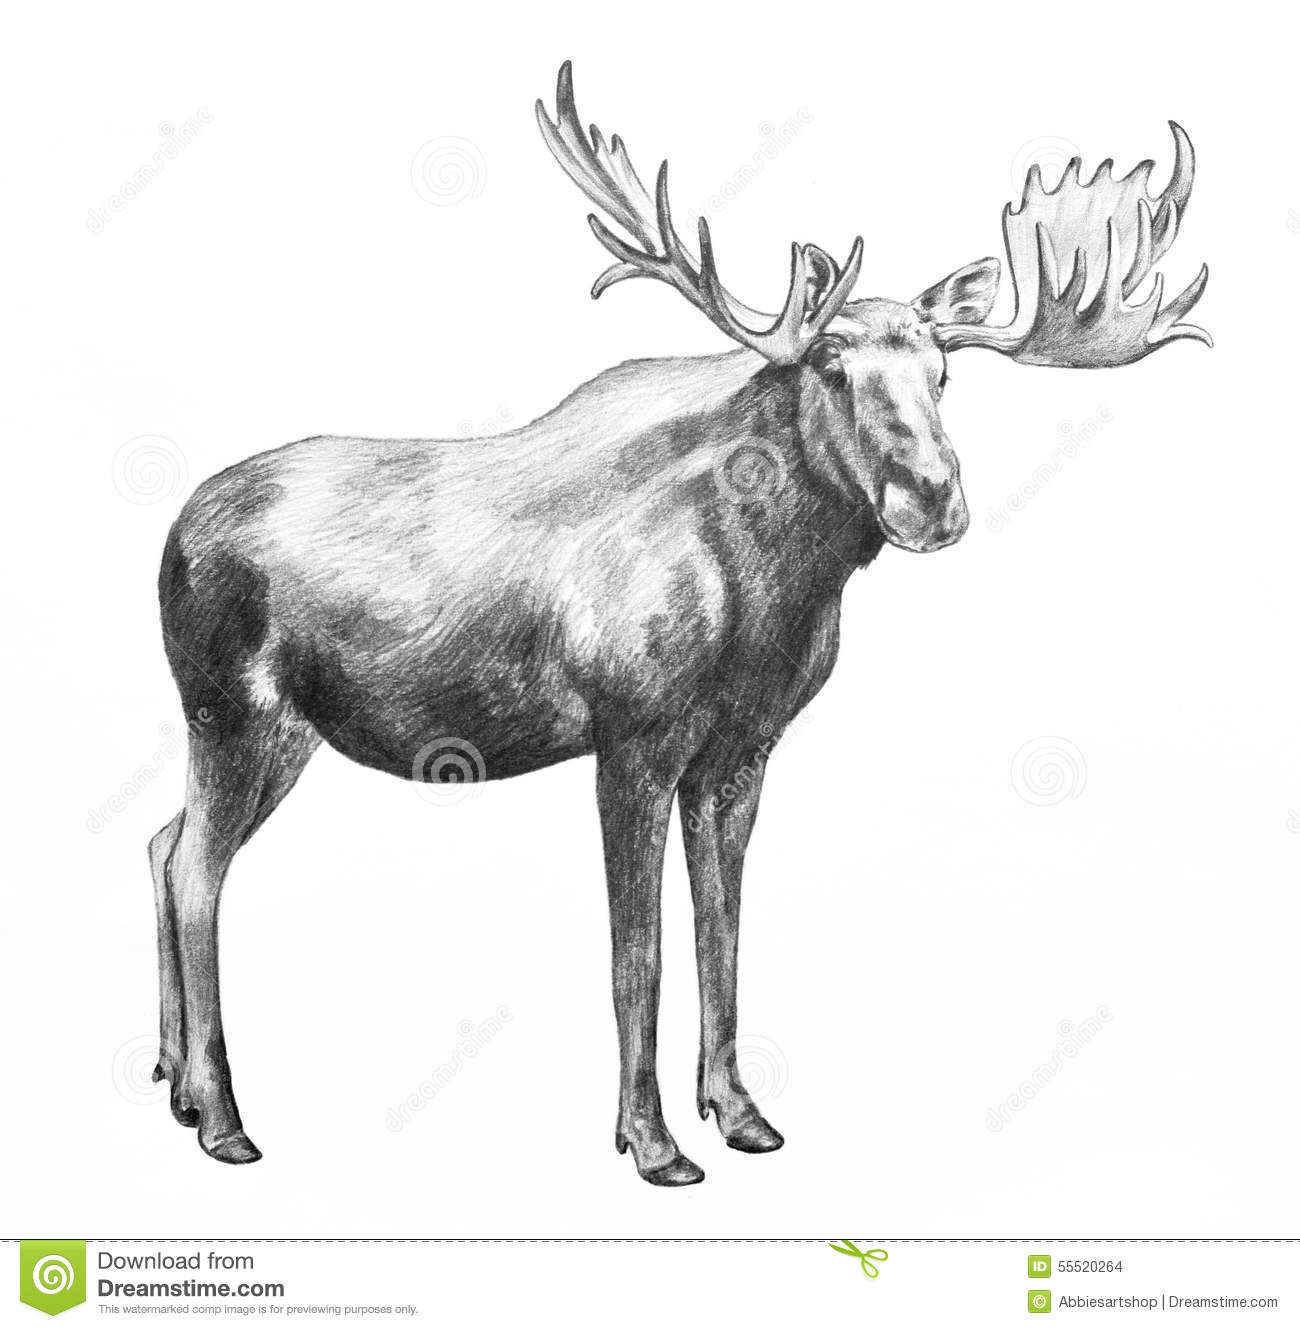 Big moose with antlers, hand drawn illustration